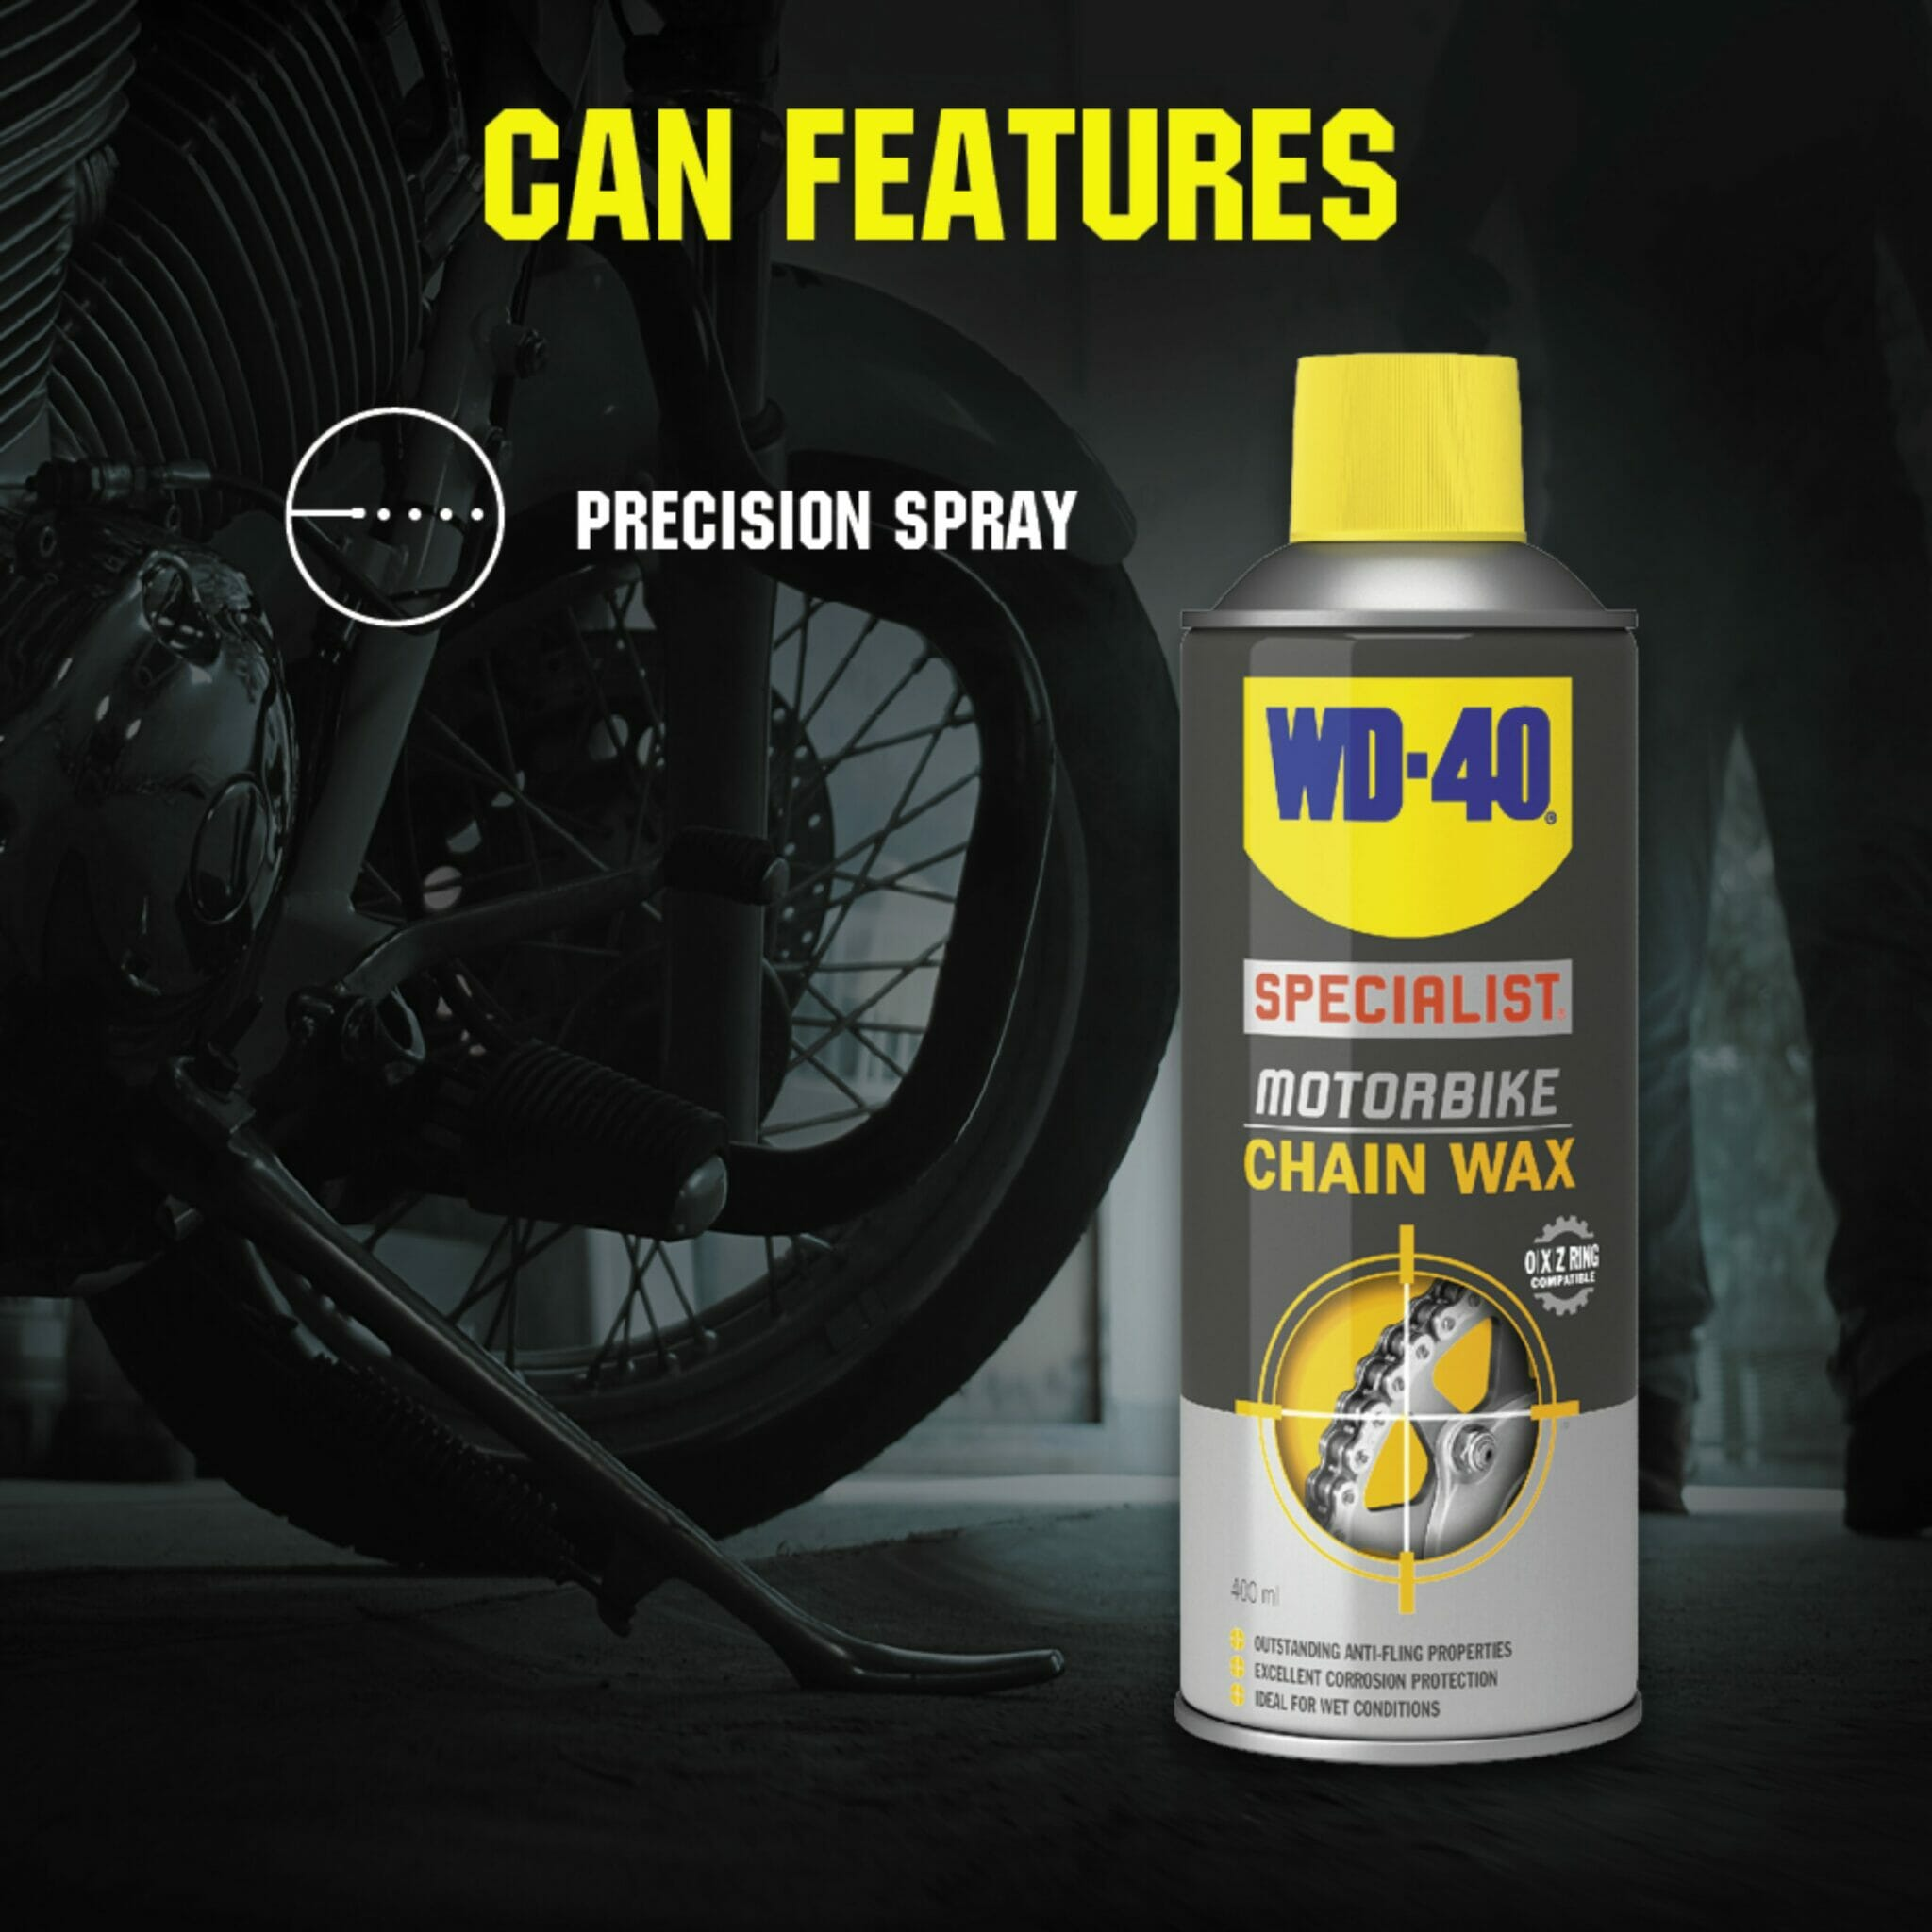 uk wd40 specialist motorbike chain wax 400ml can features lifestyle background